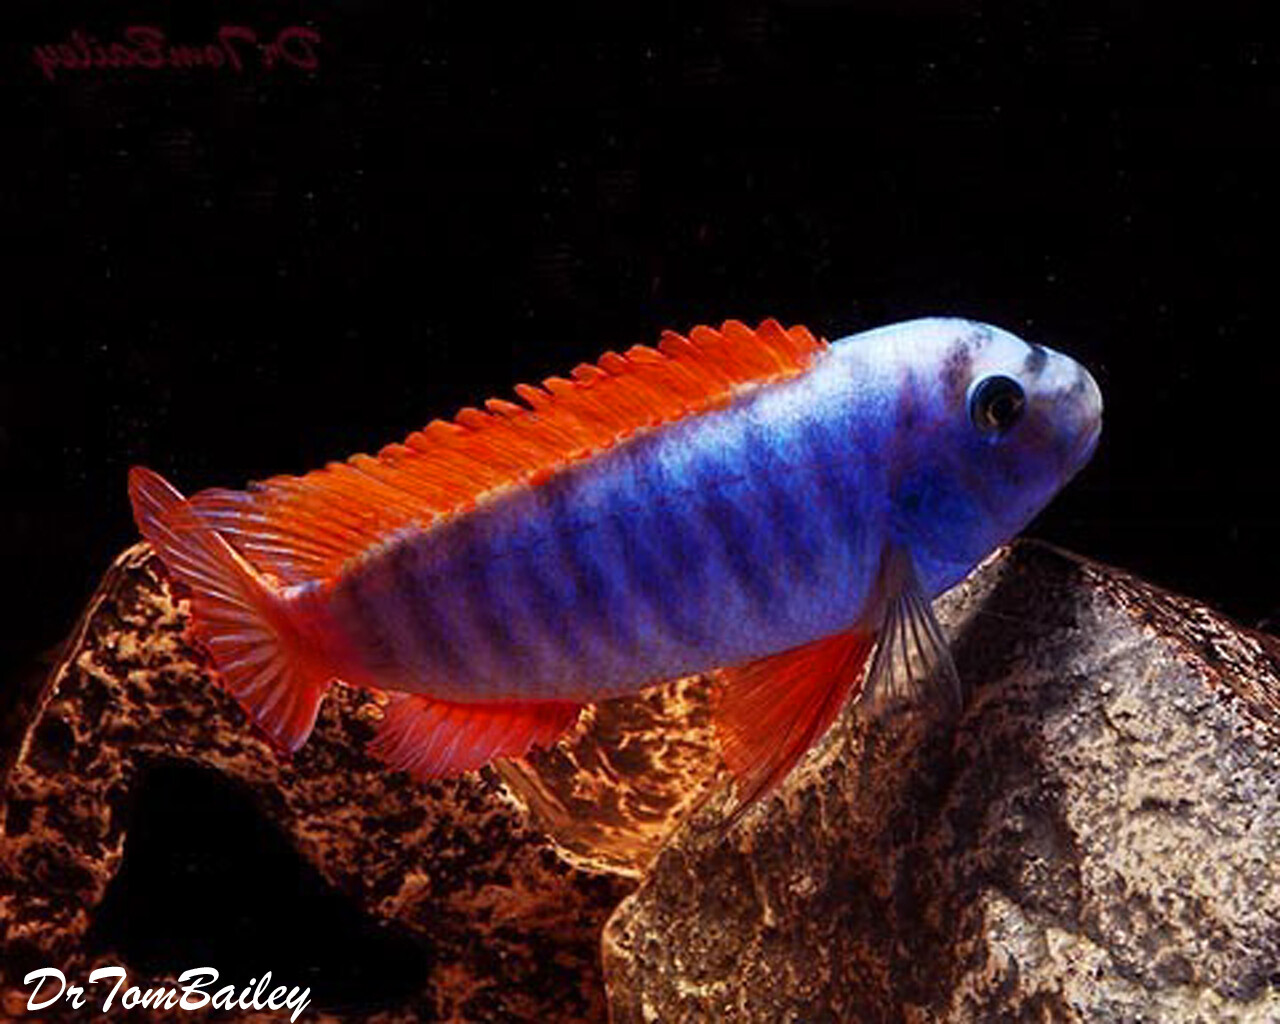 "Premium Labeotropheus Trewavasae Mbuna Cichlid from Lake Malawi, 2"" to 2.5"" long"